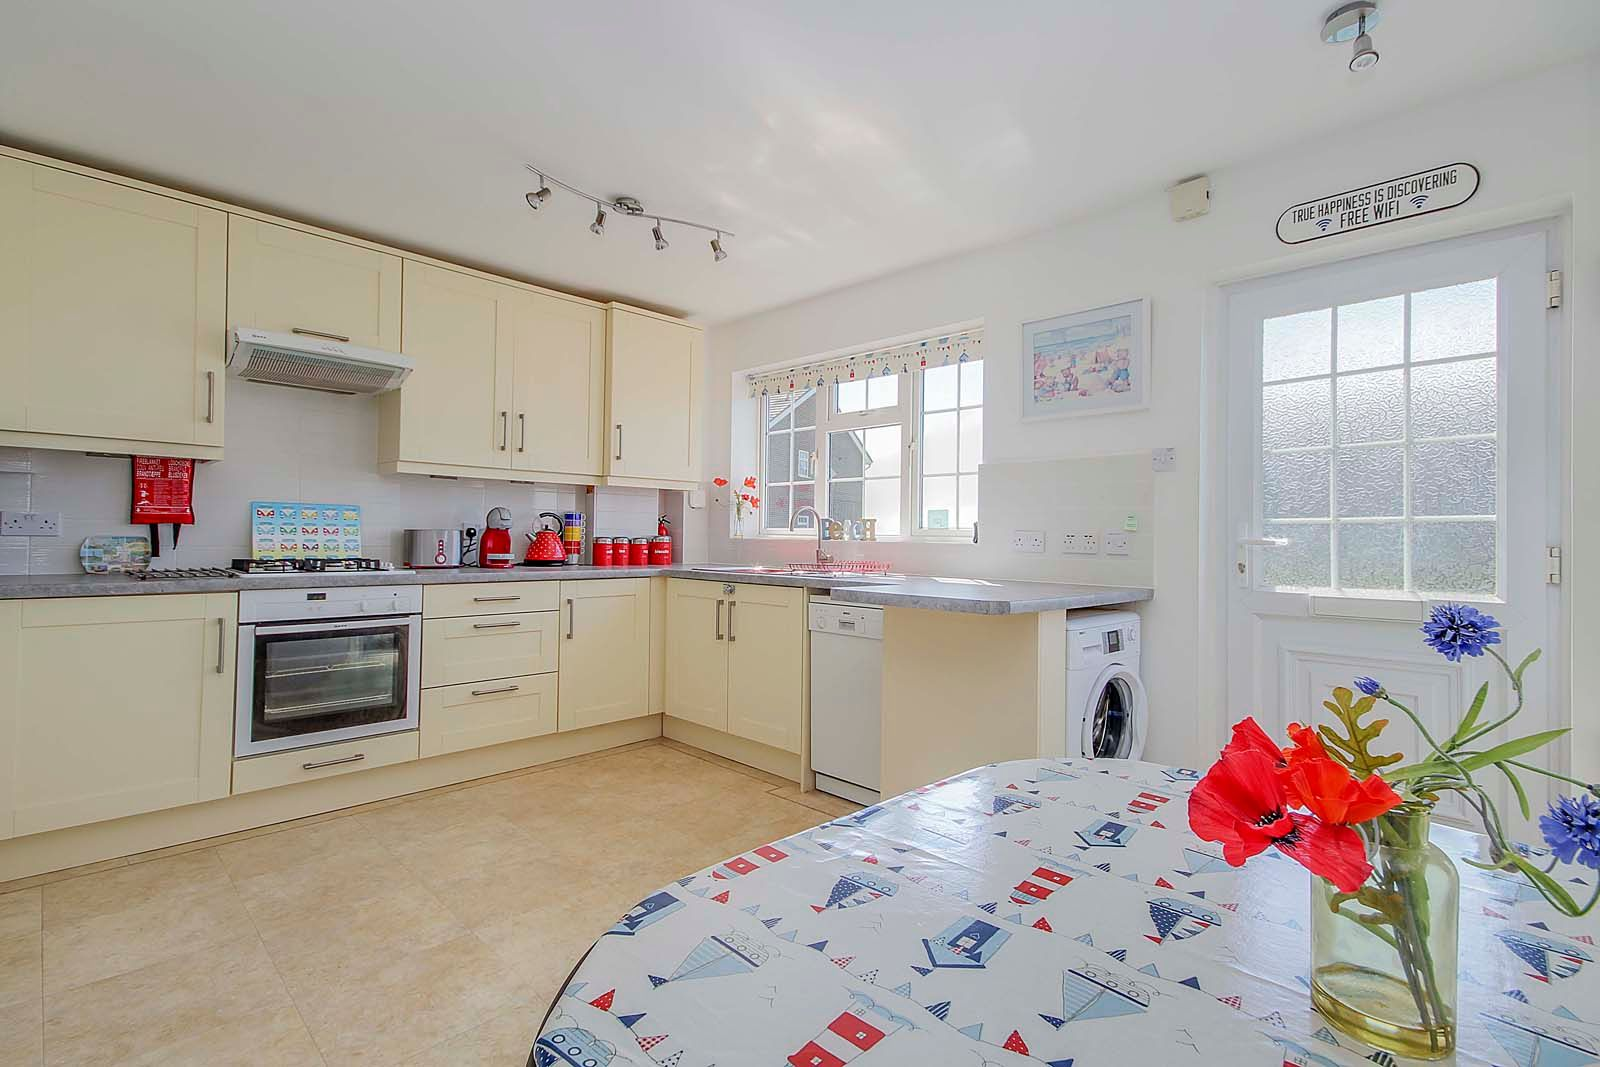 2 bed  for sale in Ferring Marine  - Property Image 3